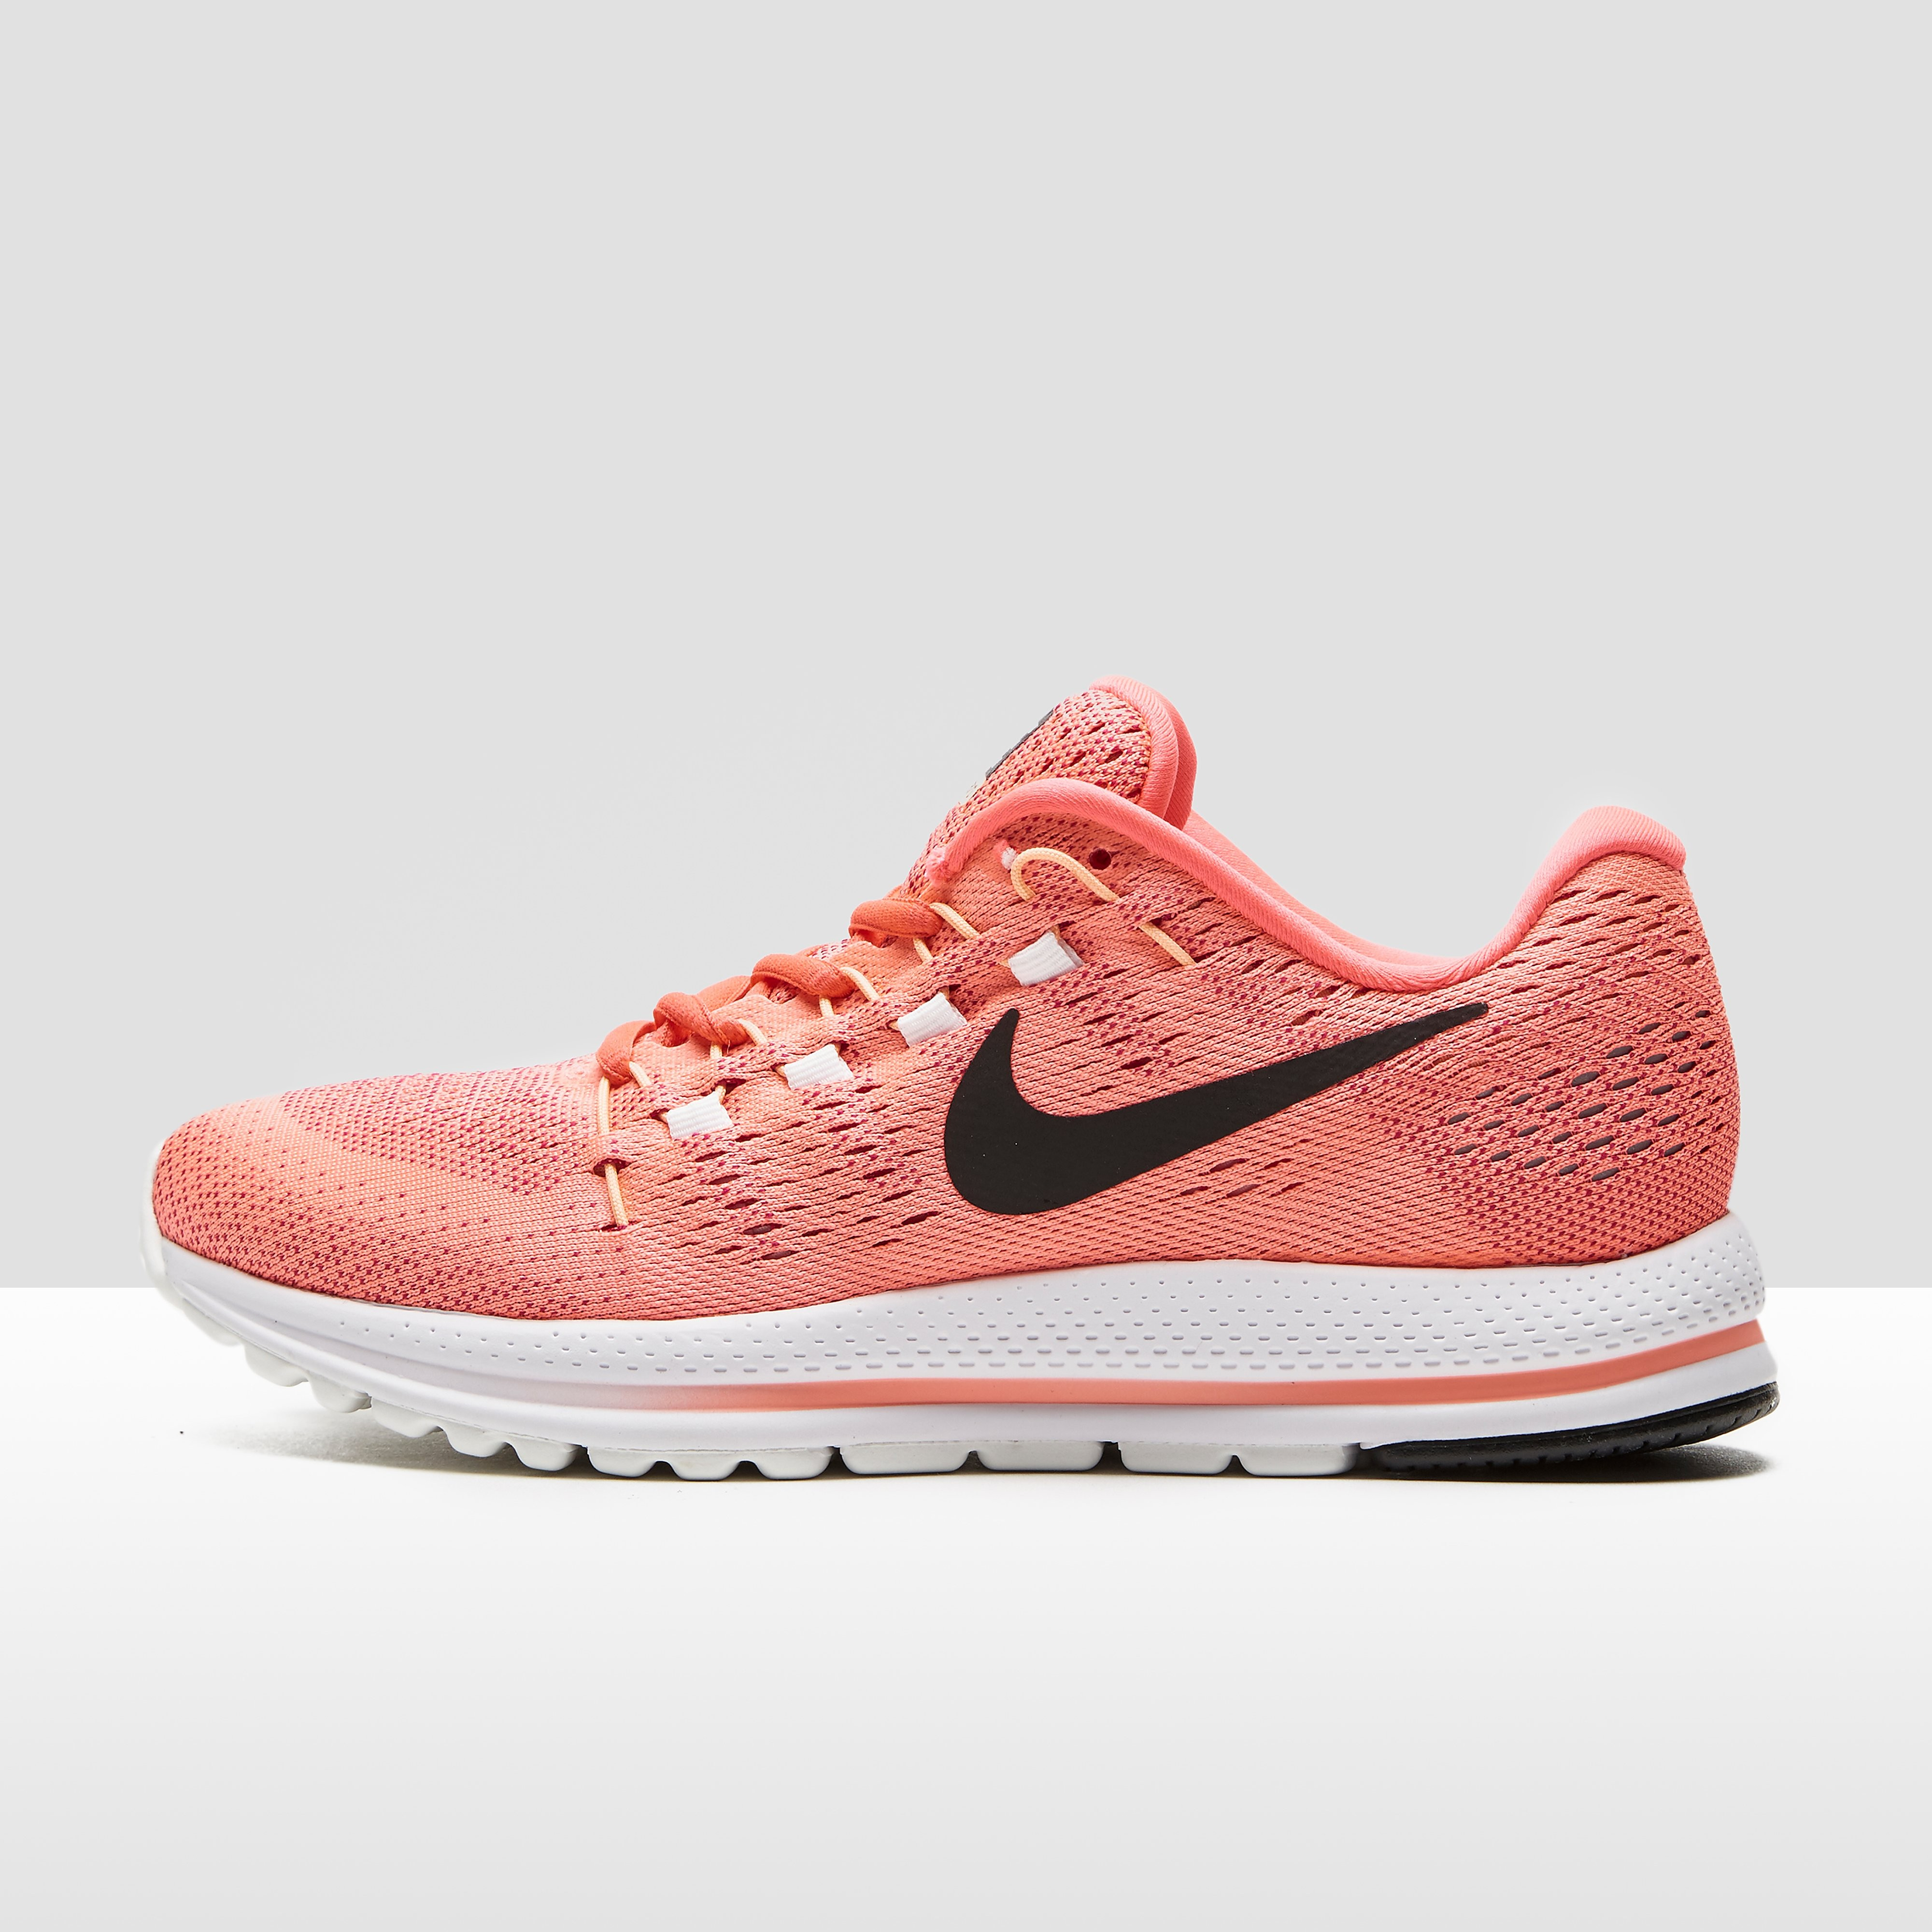 Nike Air Zoom Vomero 12 Women's Running Shoes